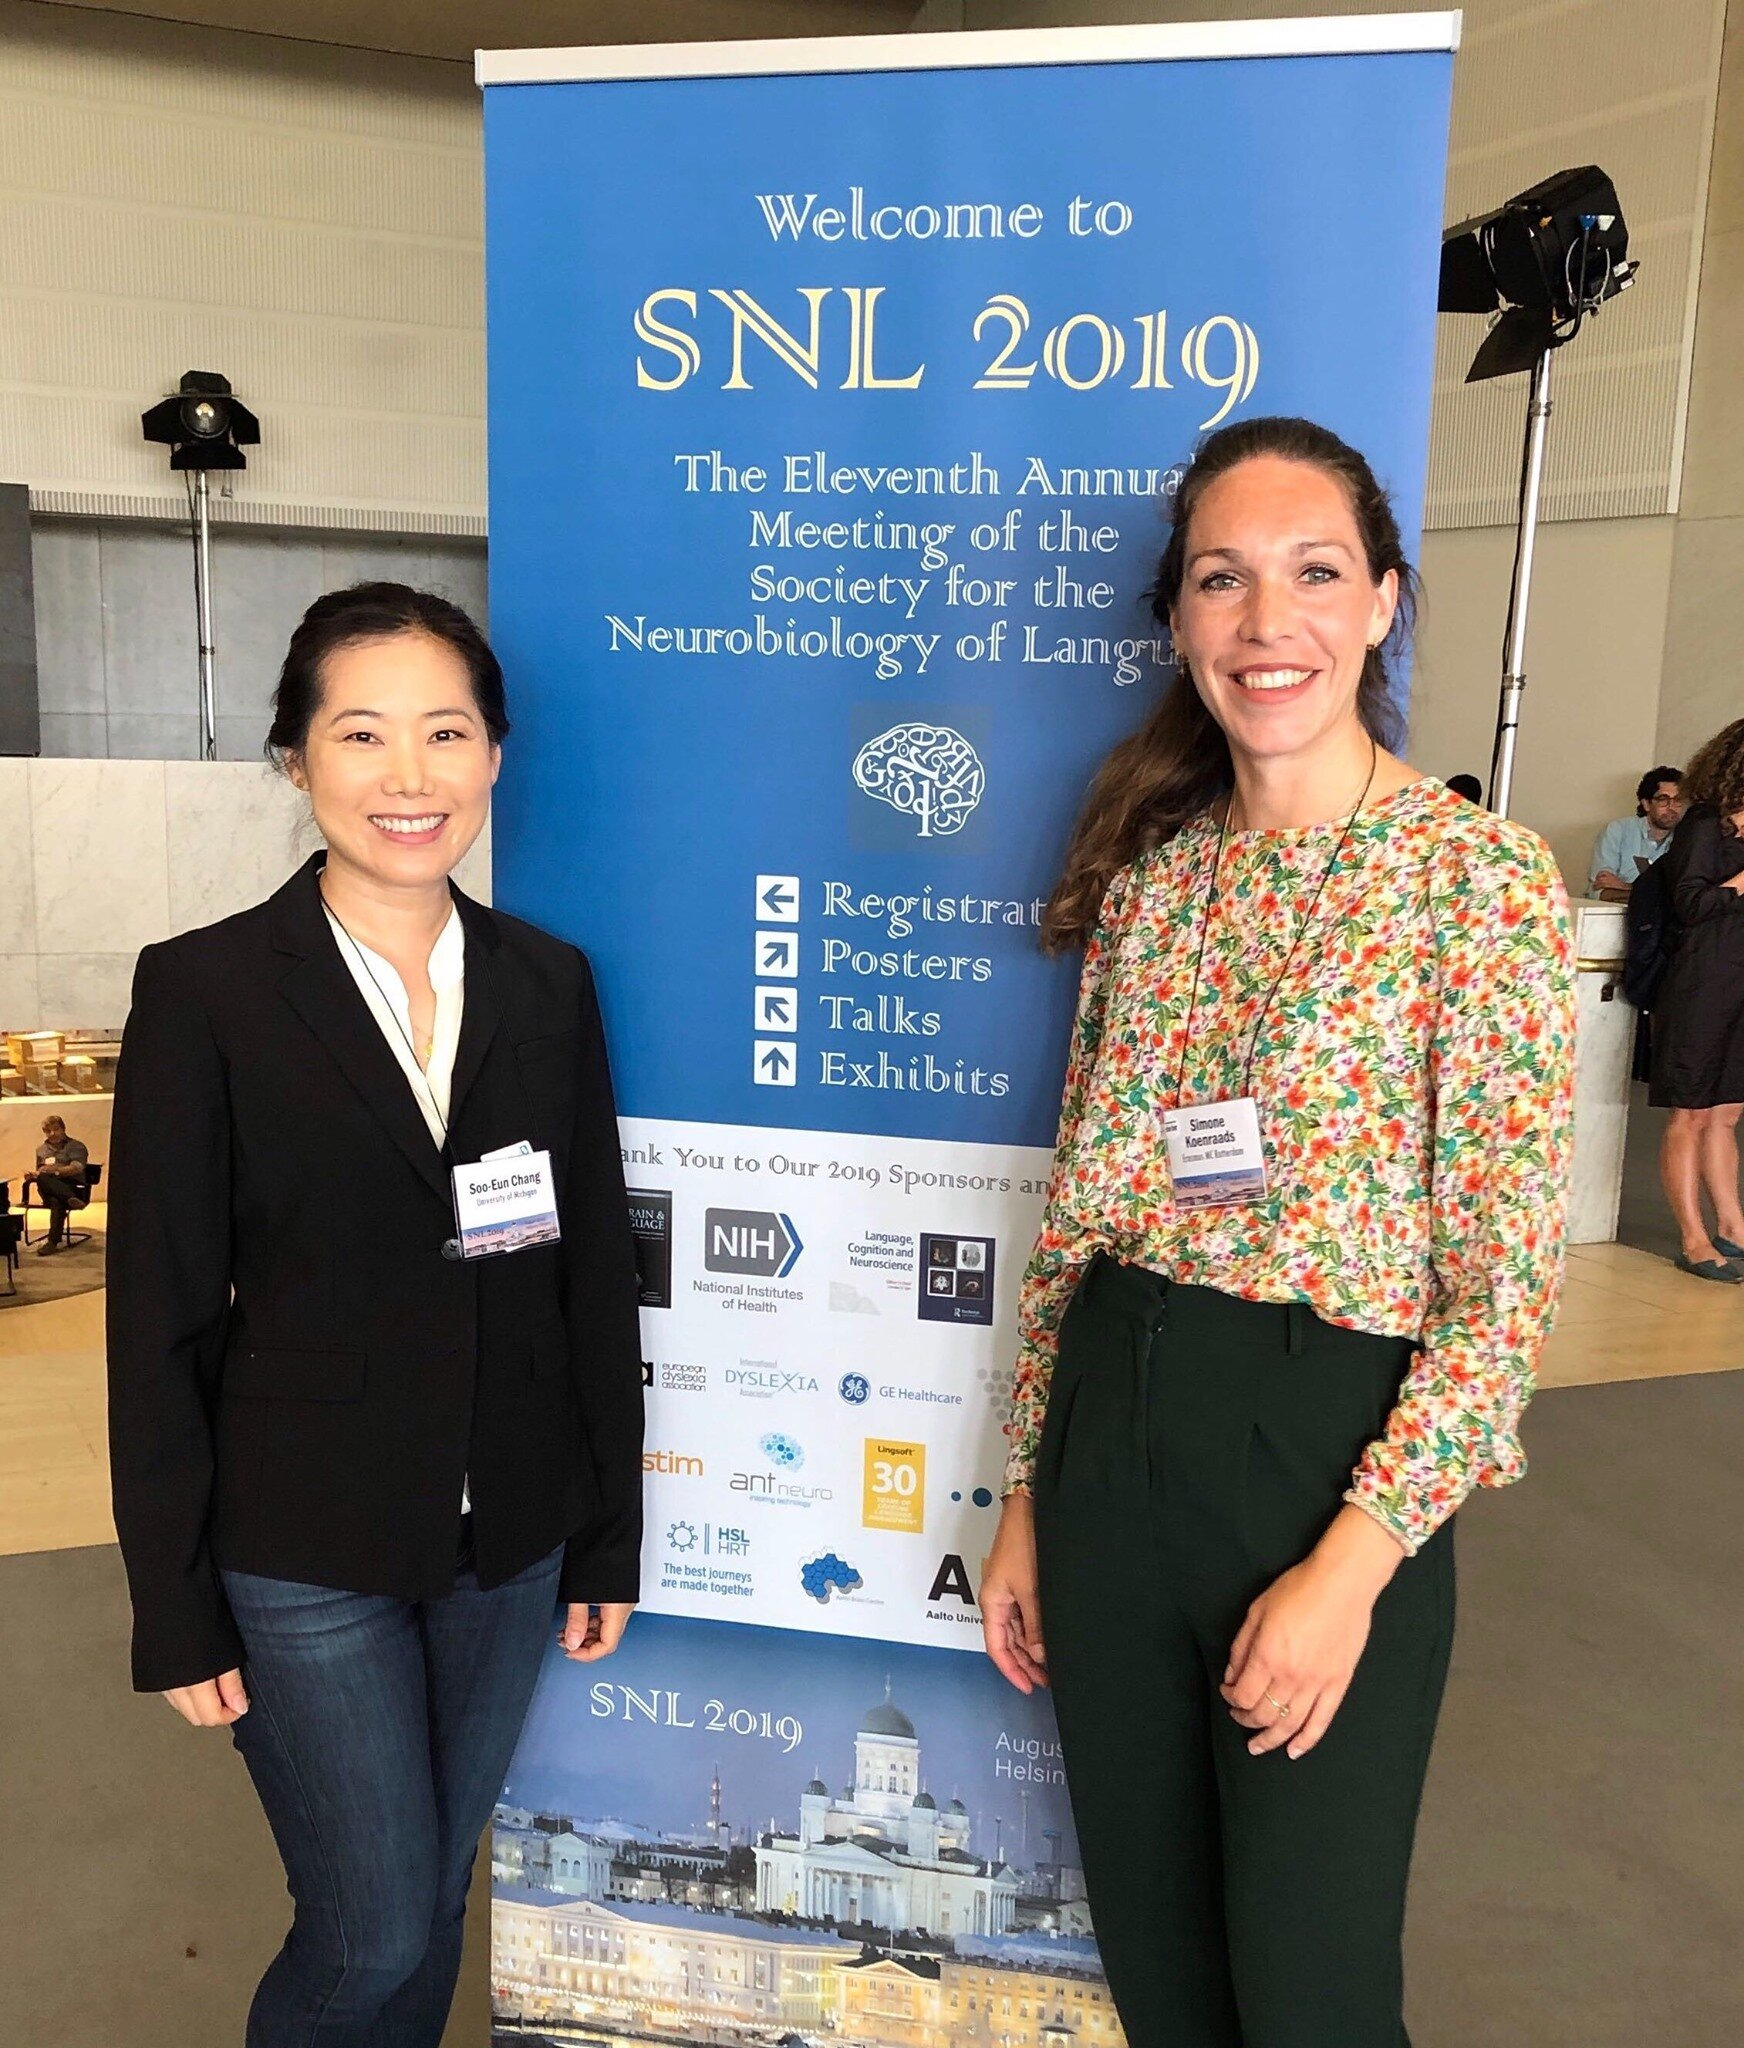 Drs Soo-Eun Chang and Simone Koenraads attended and presented at the Neurobiology of Language Conference in Helsinki.